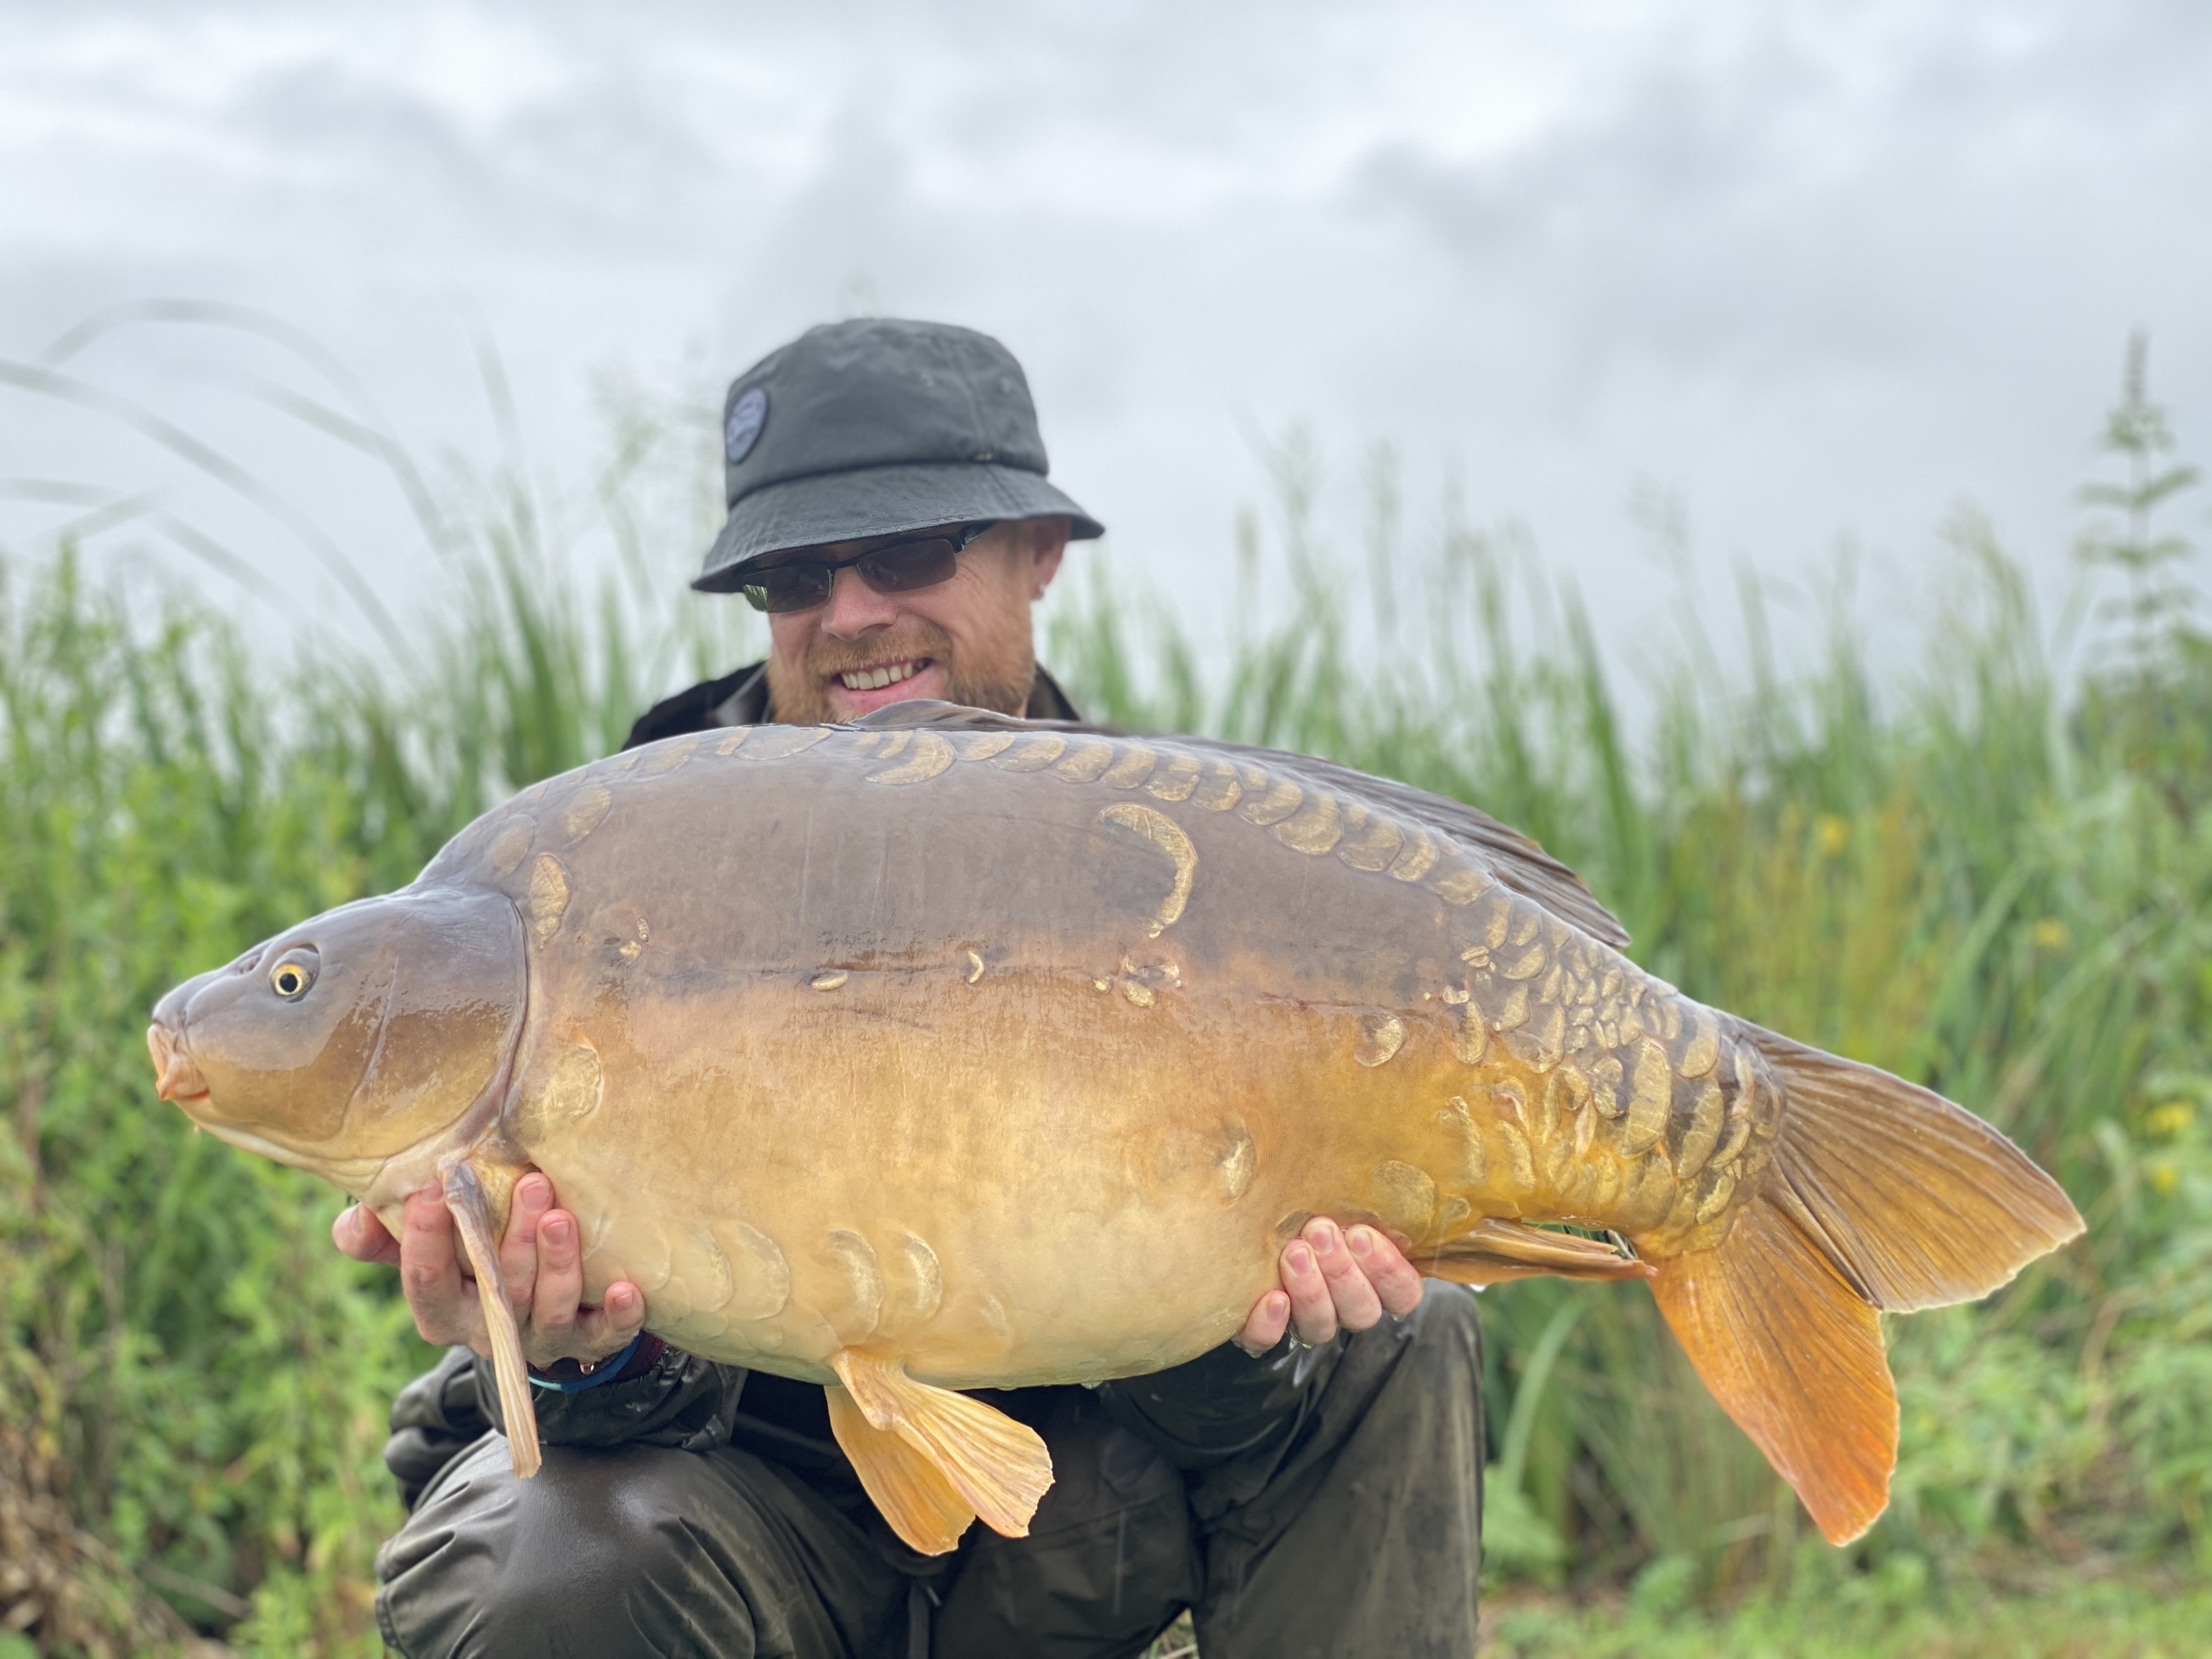 40-06 'Moonscale' caught on